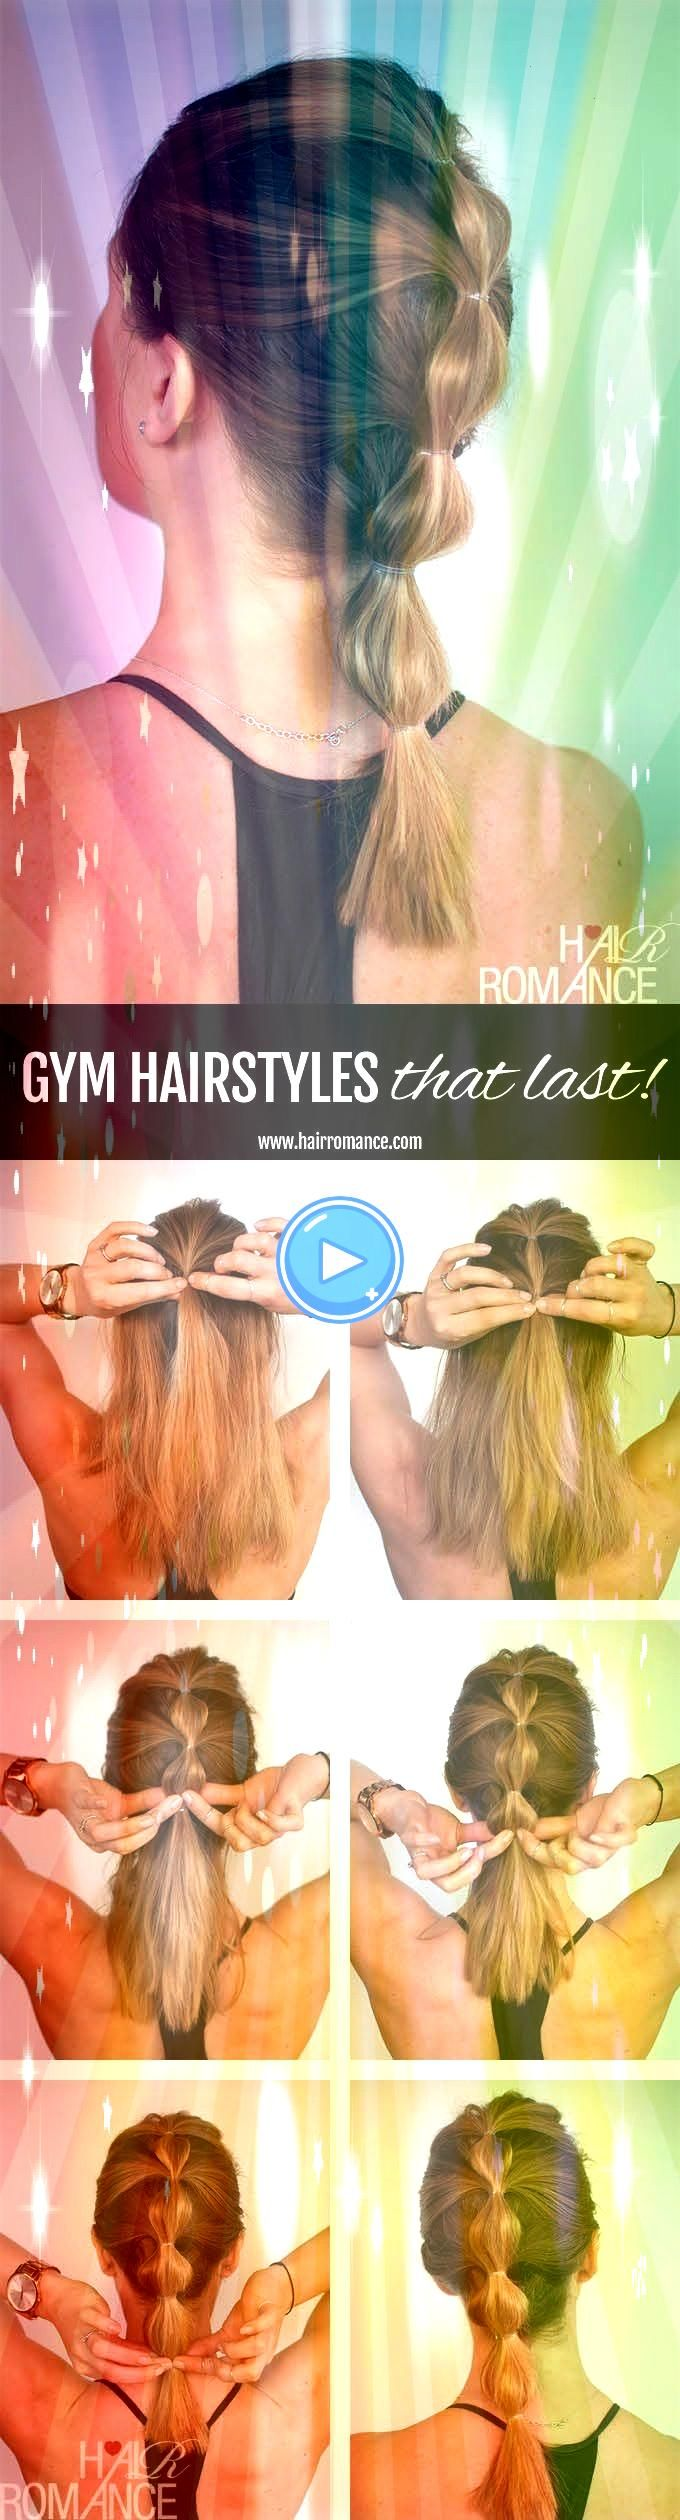 to look good while you workout  3 longlasting hairstyle tutorials you can wear all day  Hairstyle Ponytail How to look good while you workout  3 longlasting hairstyle tut...